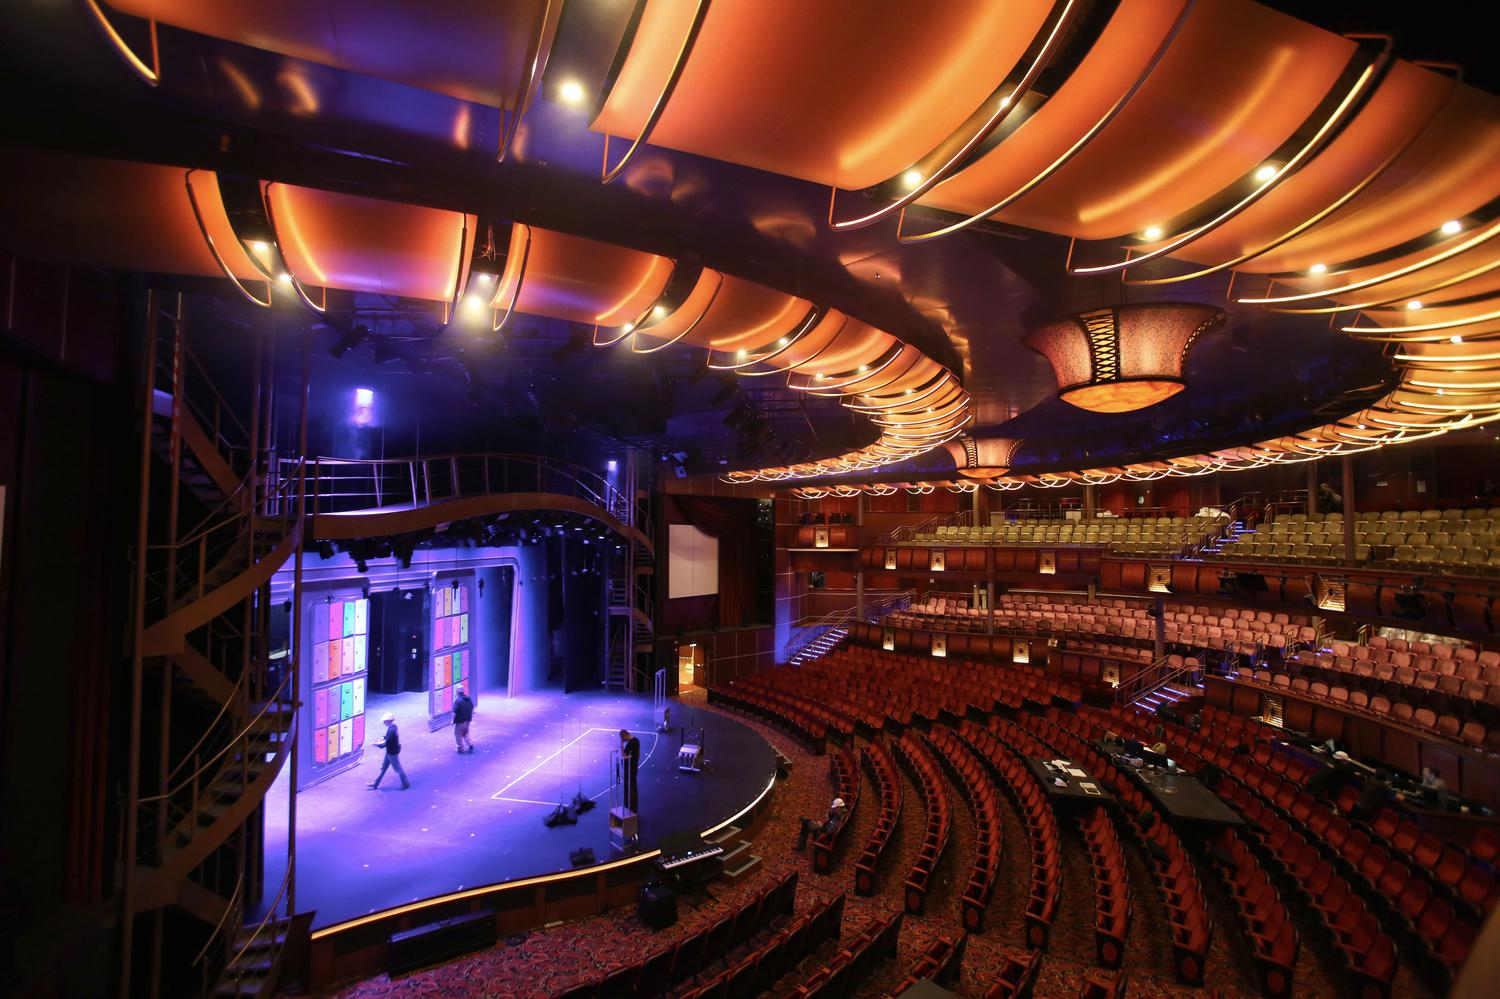 théâtre harmony of the seas